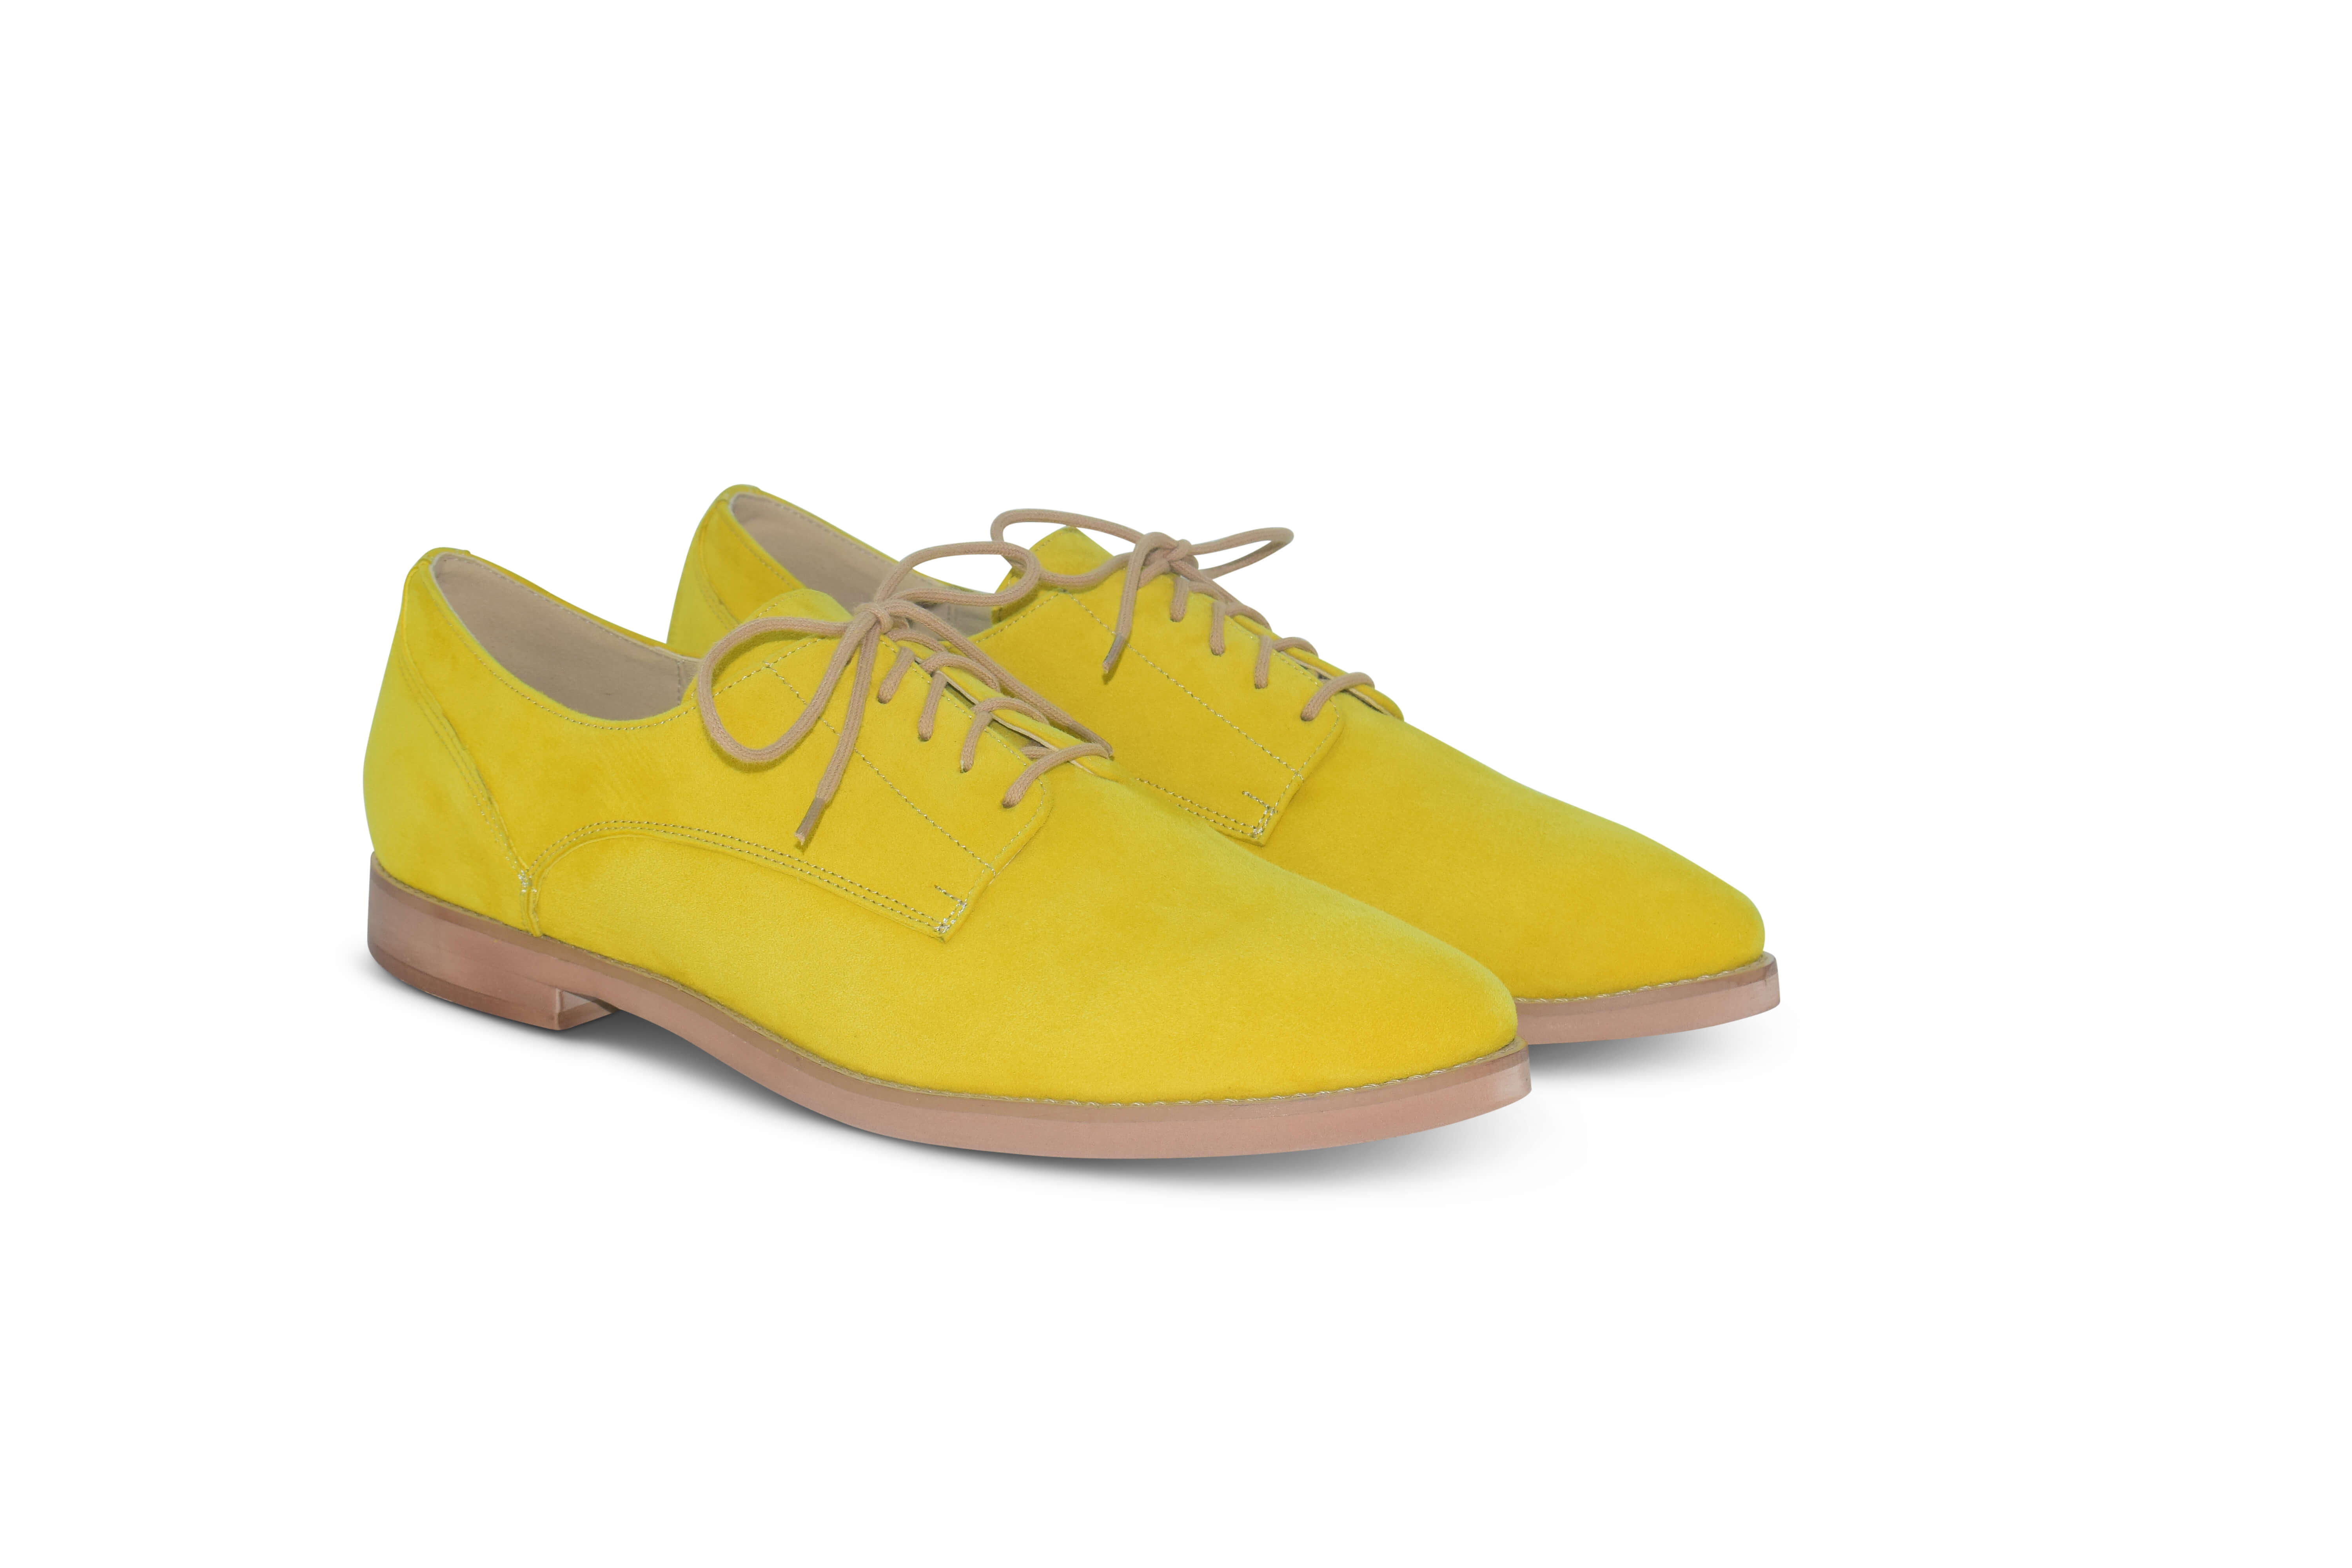 Harriett leather pointed toe Oxfords - yellow